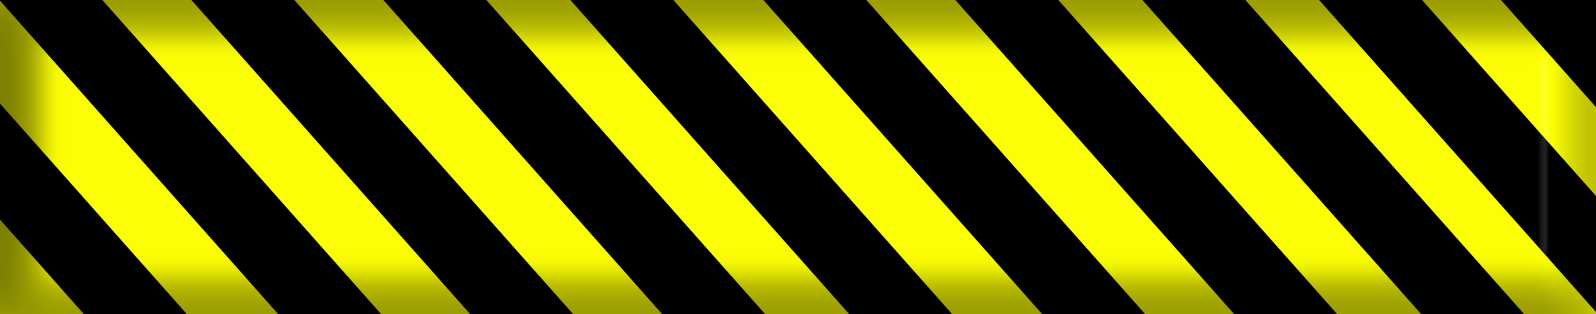 Caution Tape.png